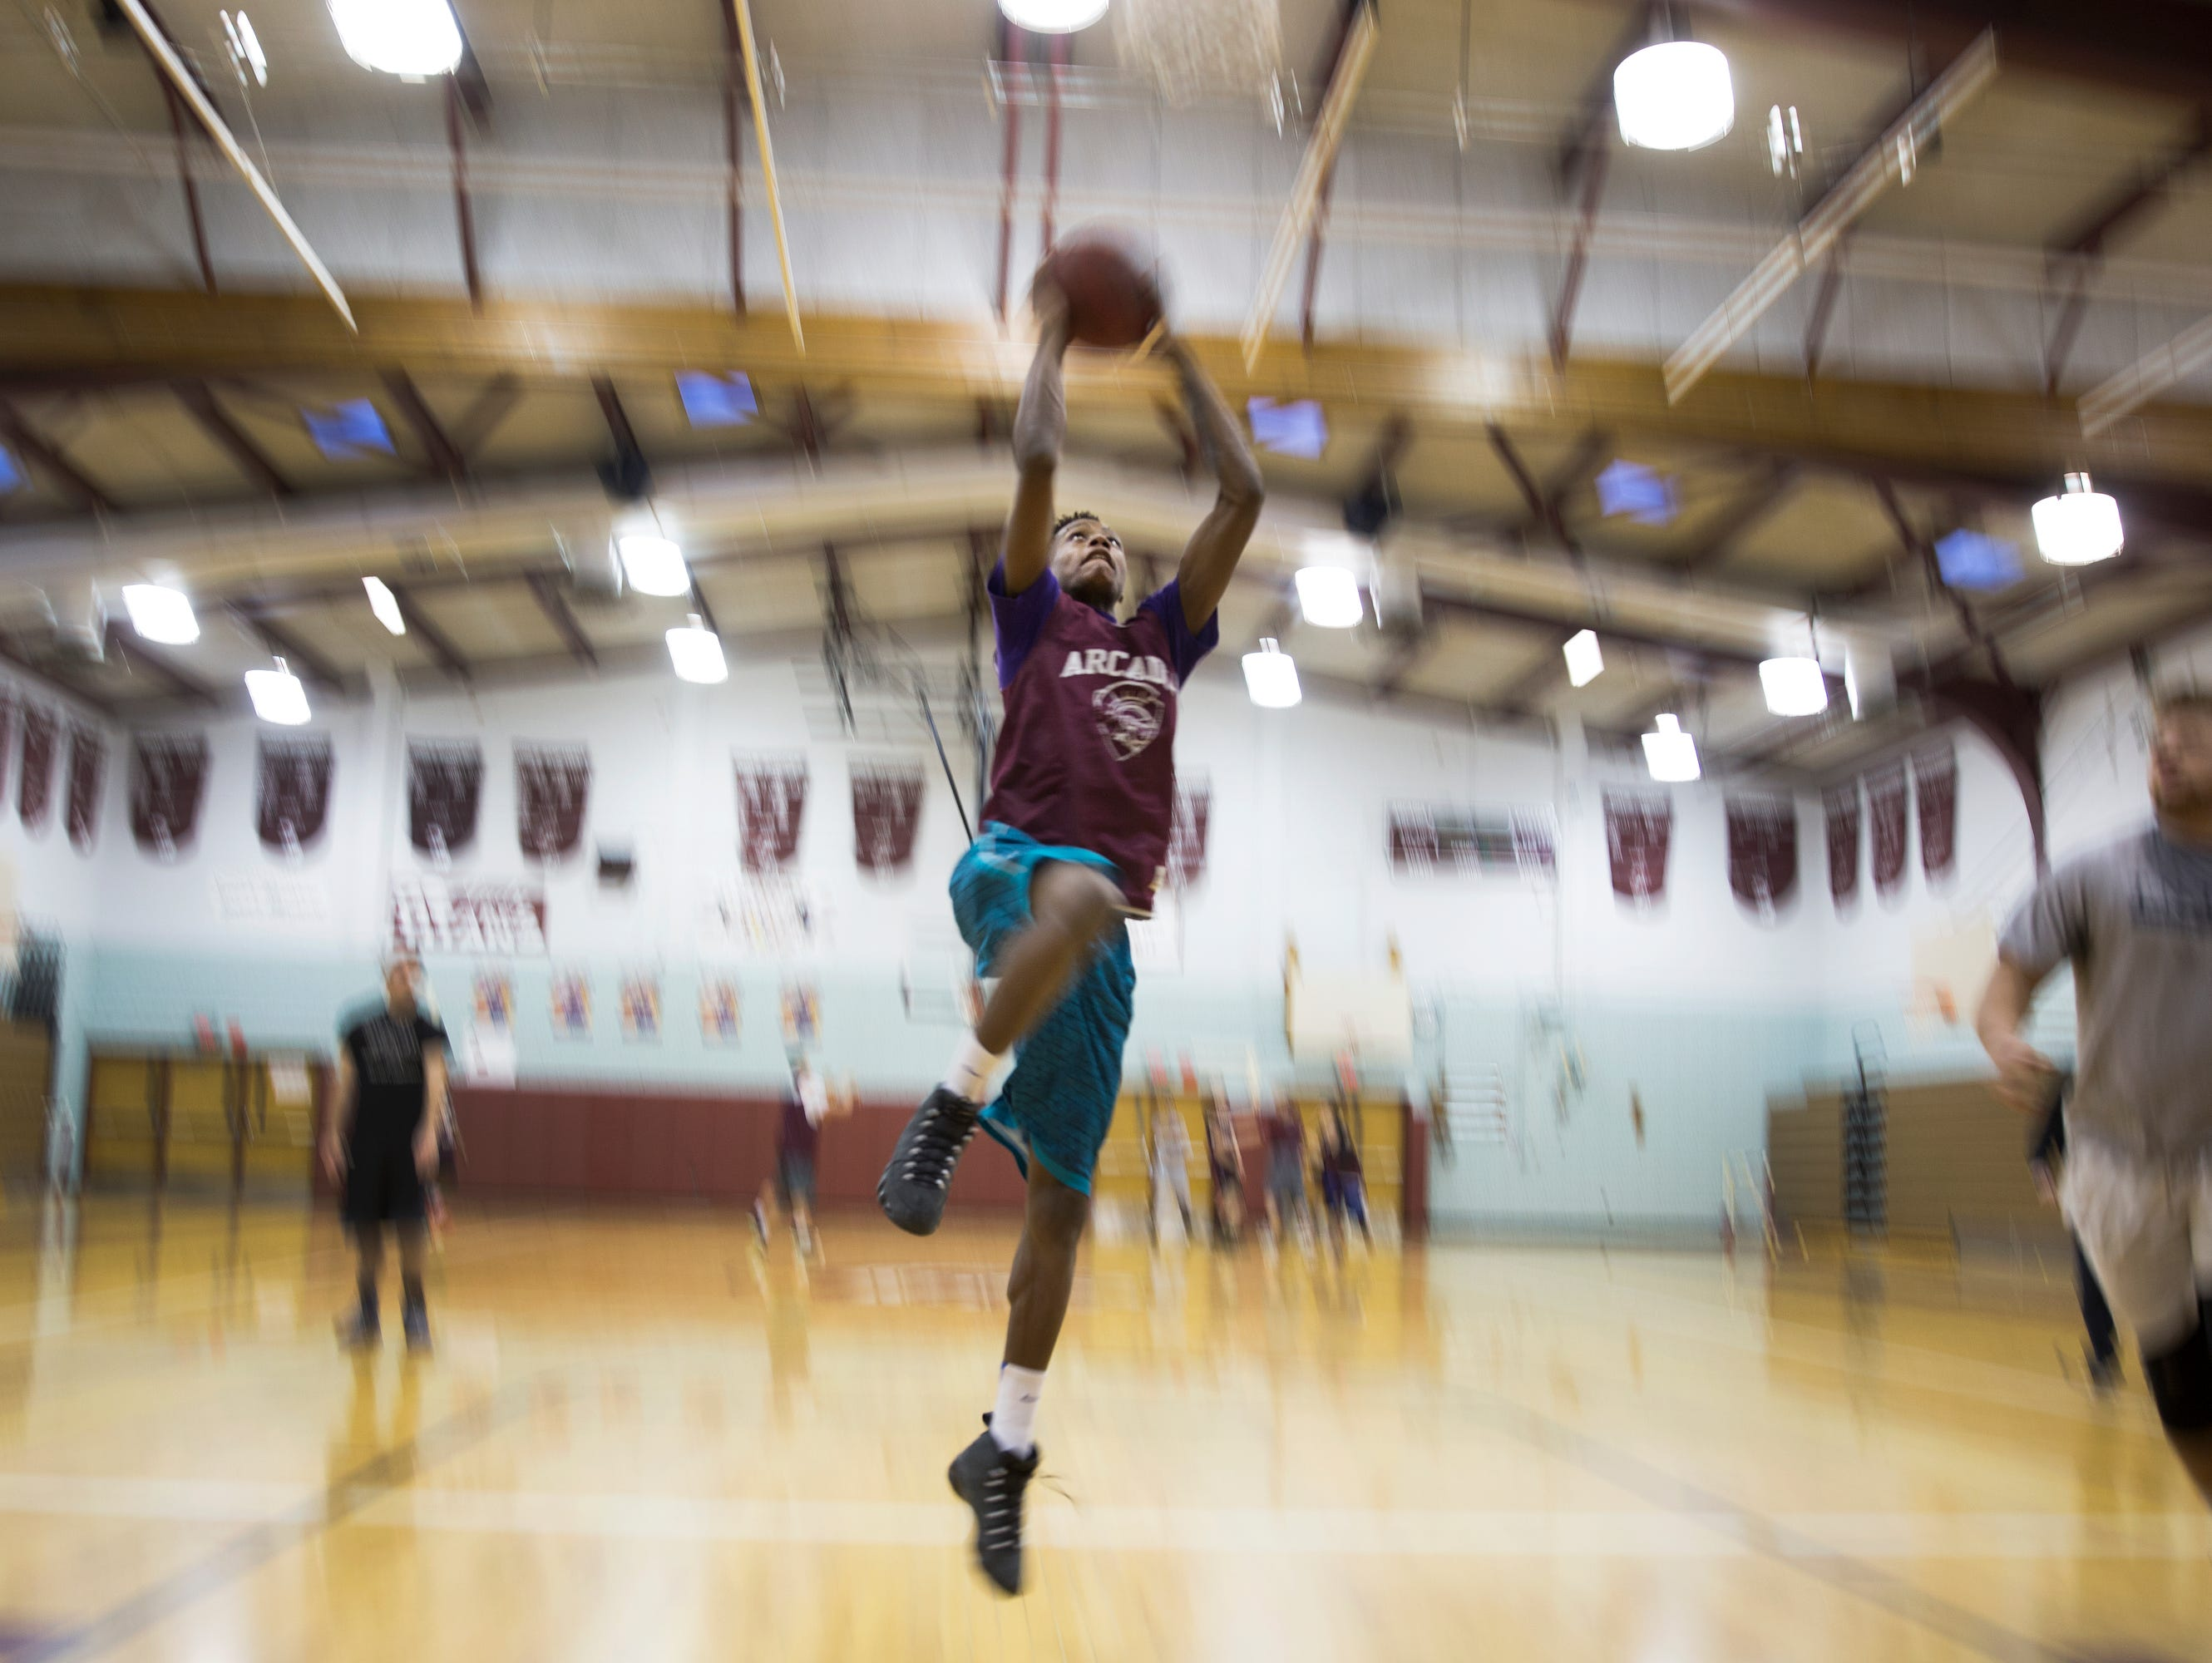 Keith McGee goes for a dunk during practice at Greece Arcadia High School on Wednesday, January 6, 2016.